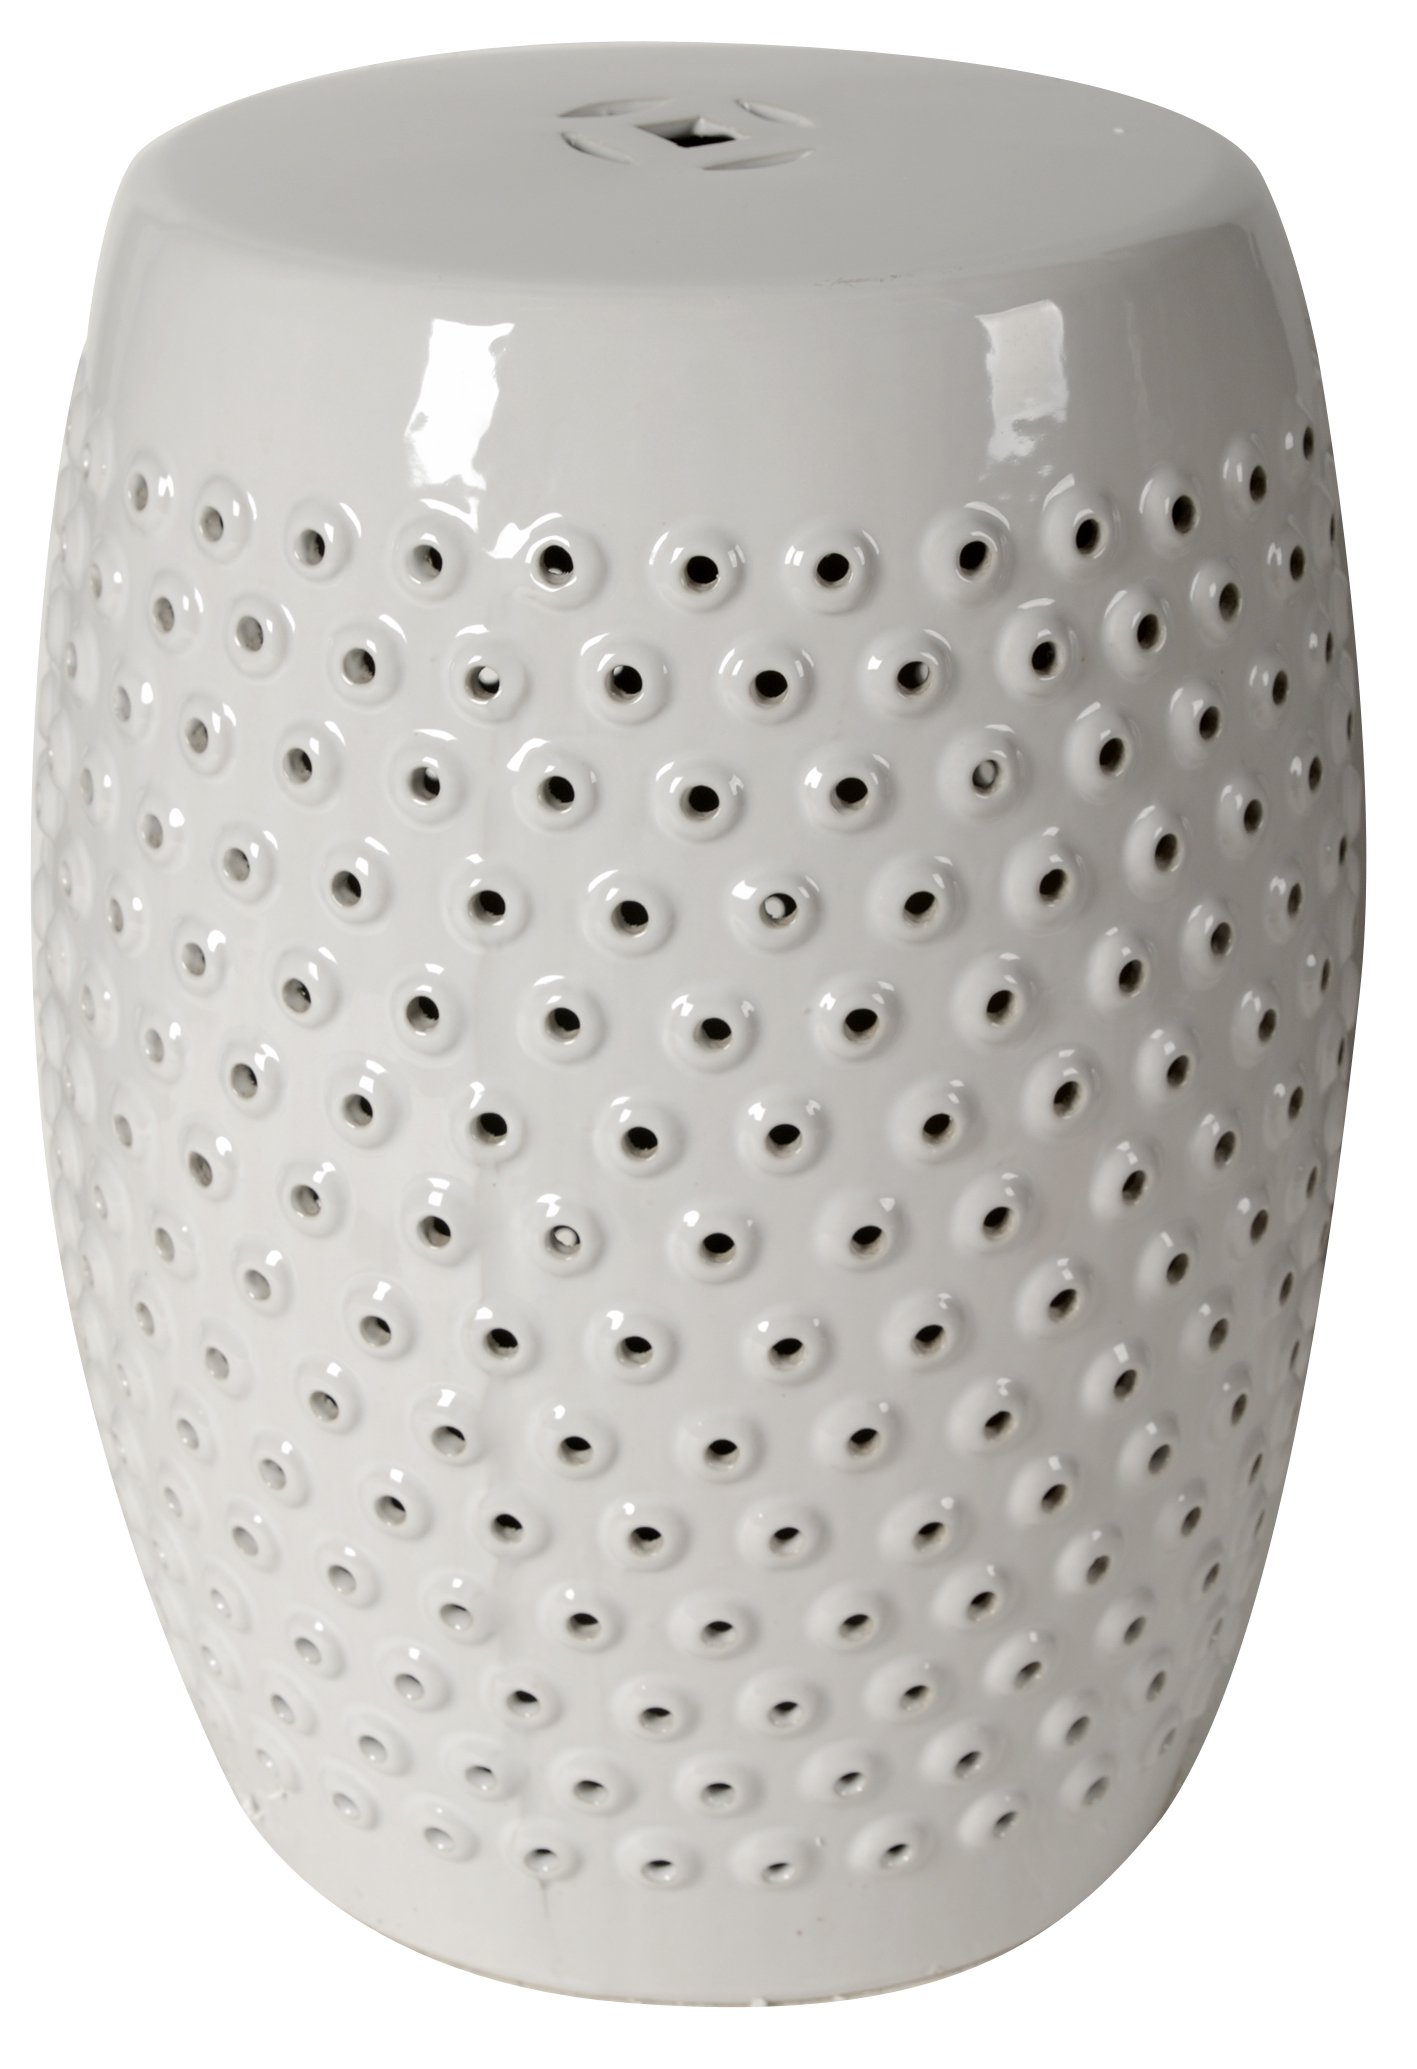 A&B Home Finley Patterned Ceramic Garden Stool